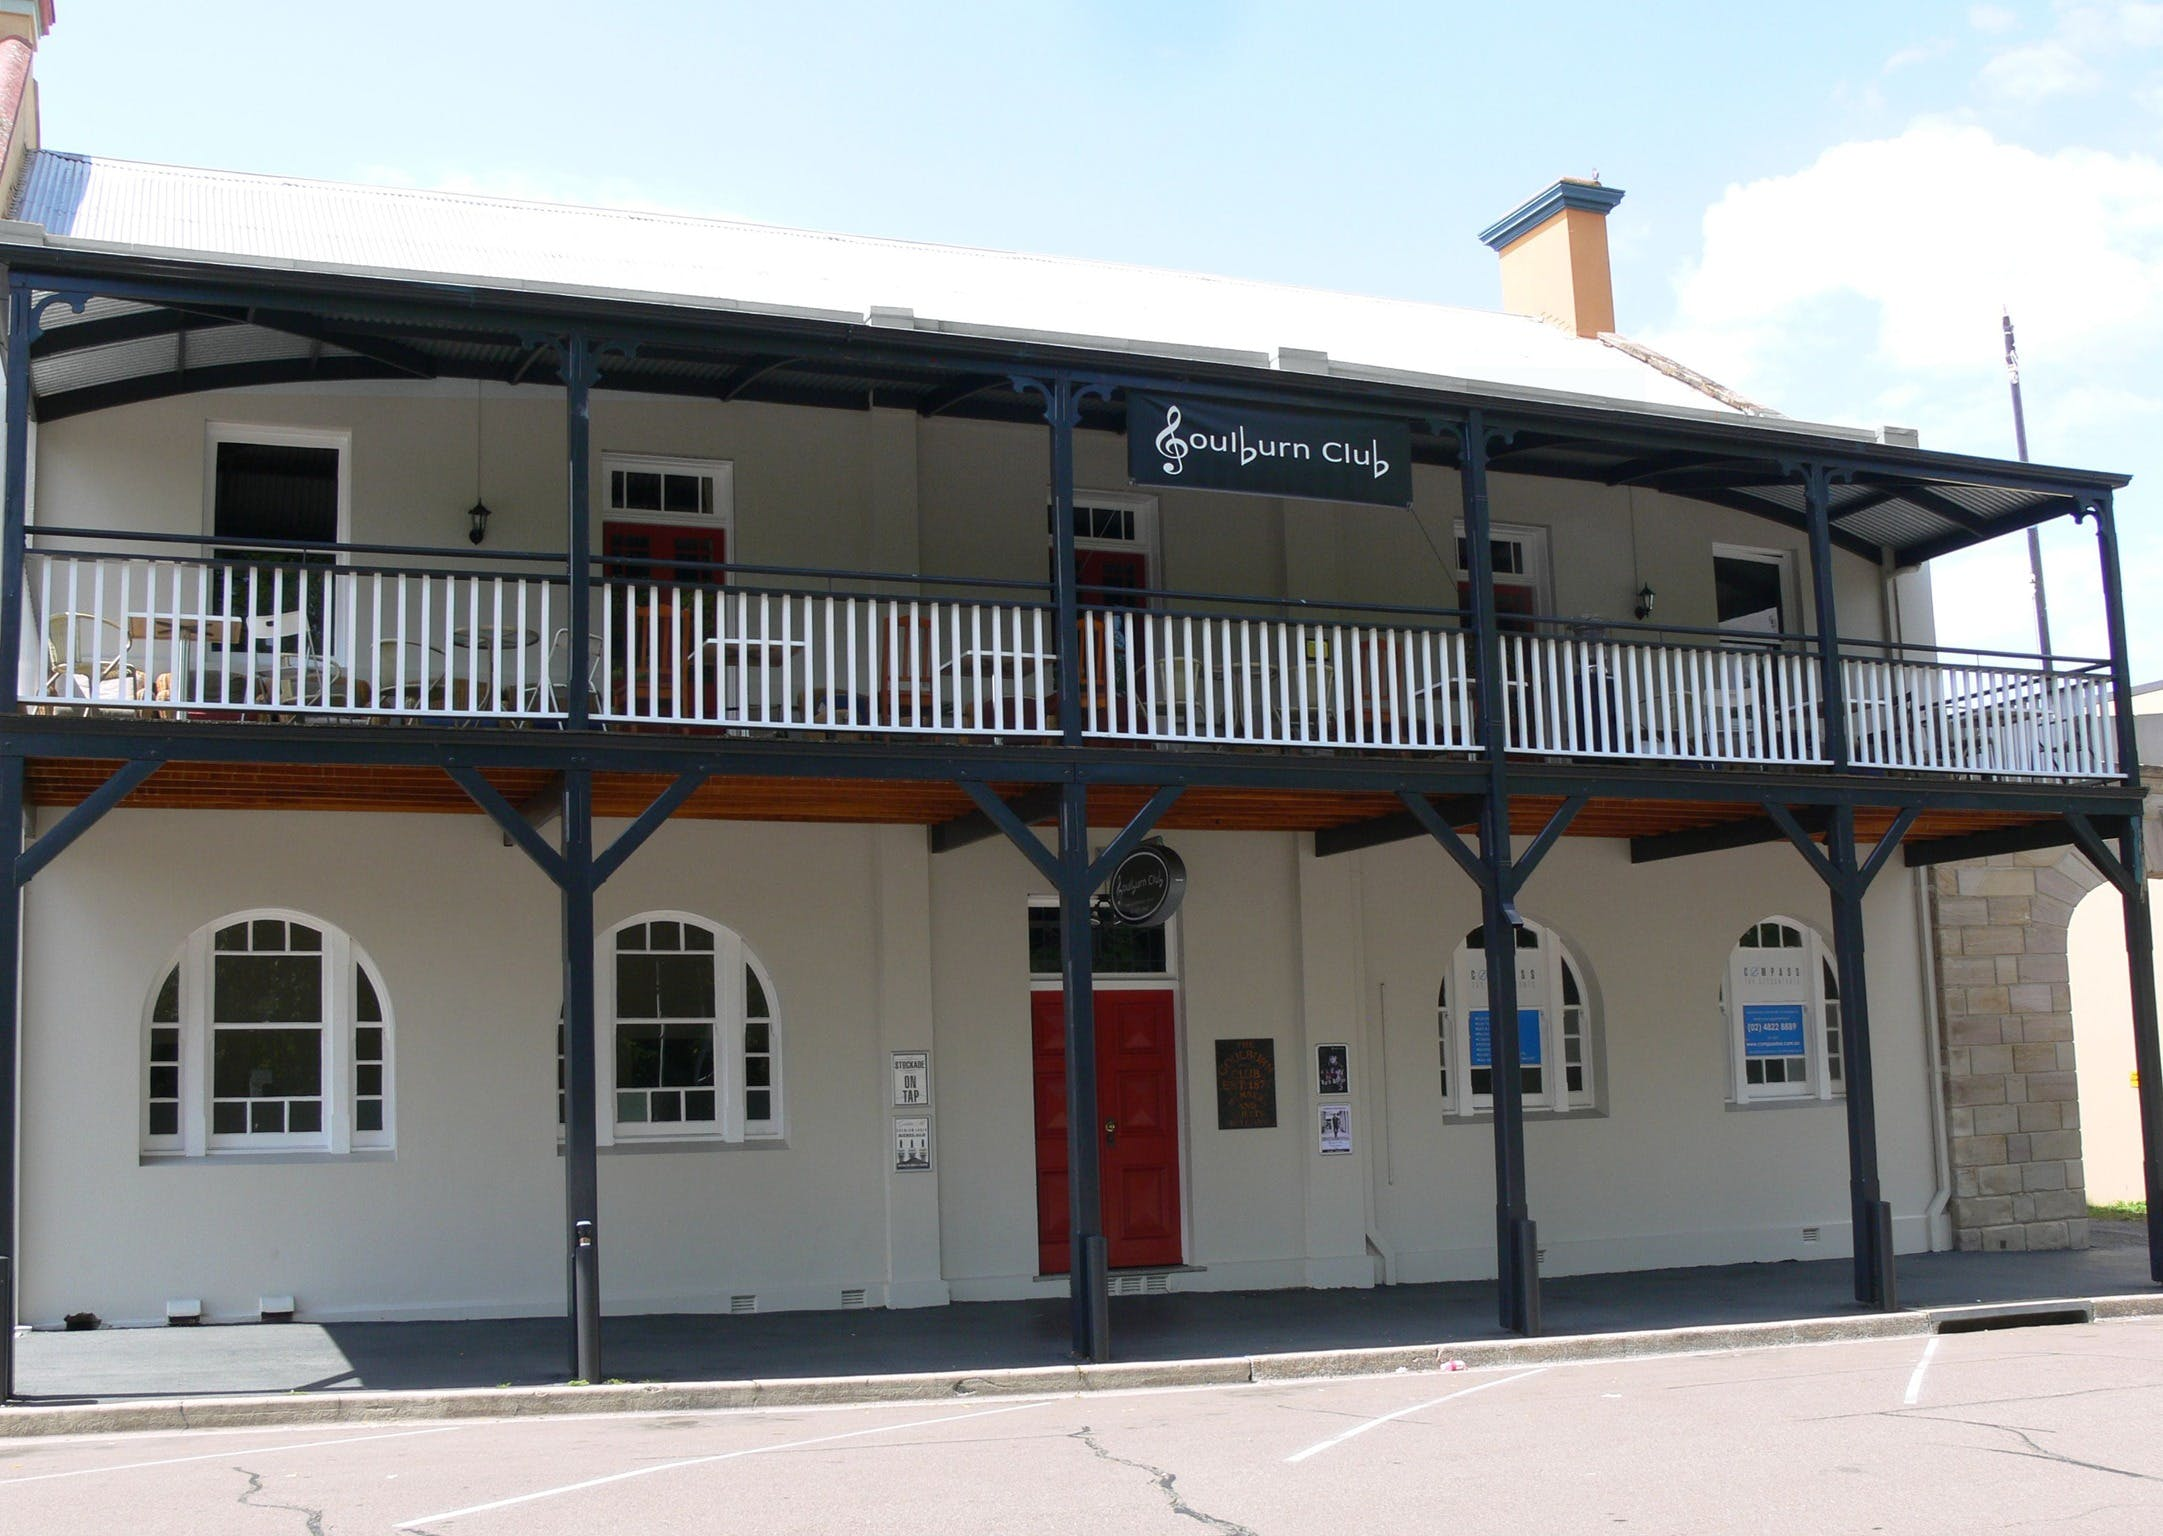 Open Mic Night at the Goulburn Club - Sunshine Coast Tourism